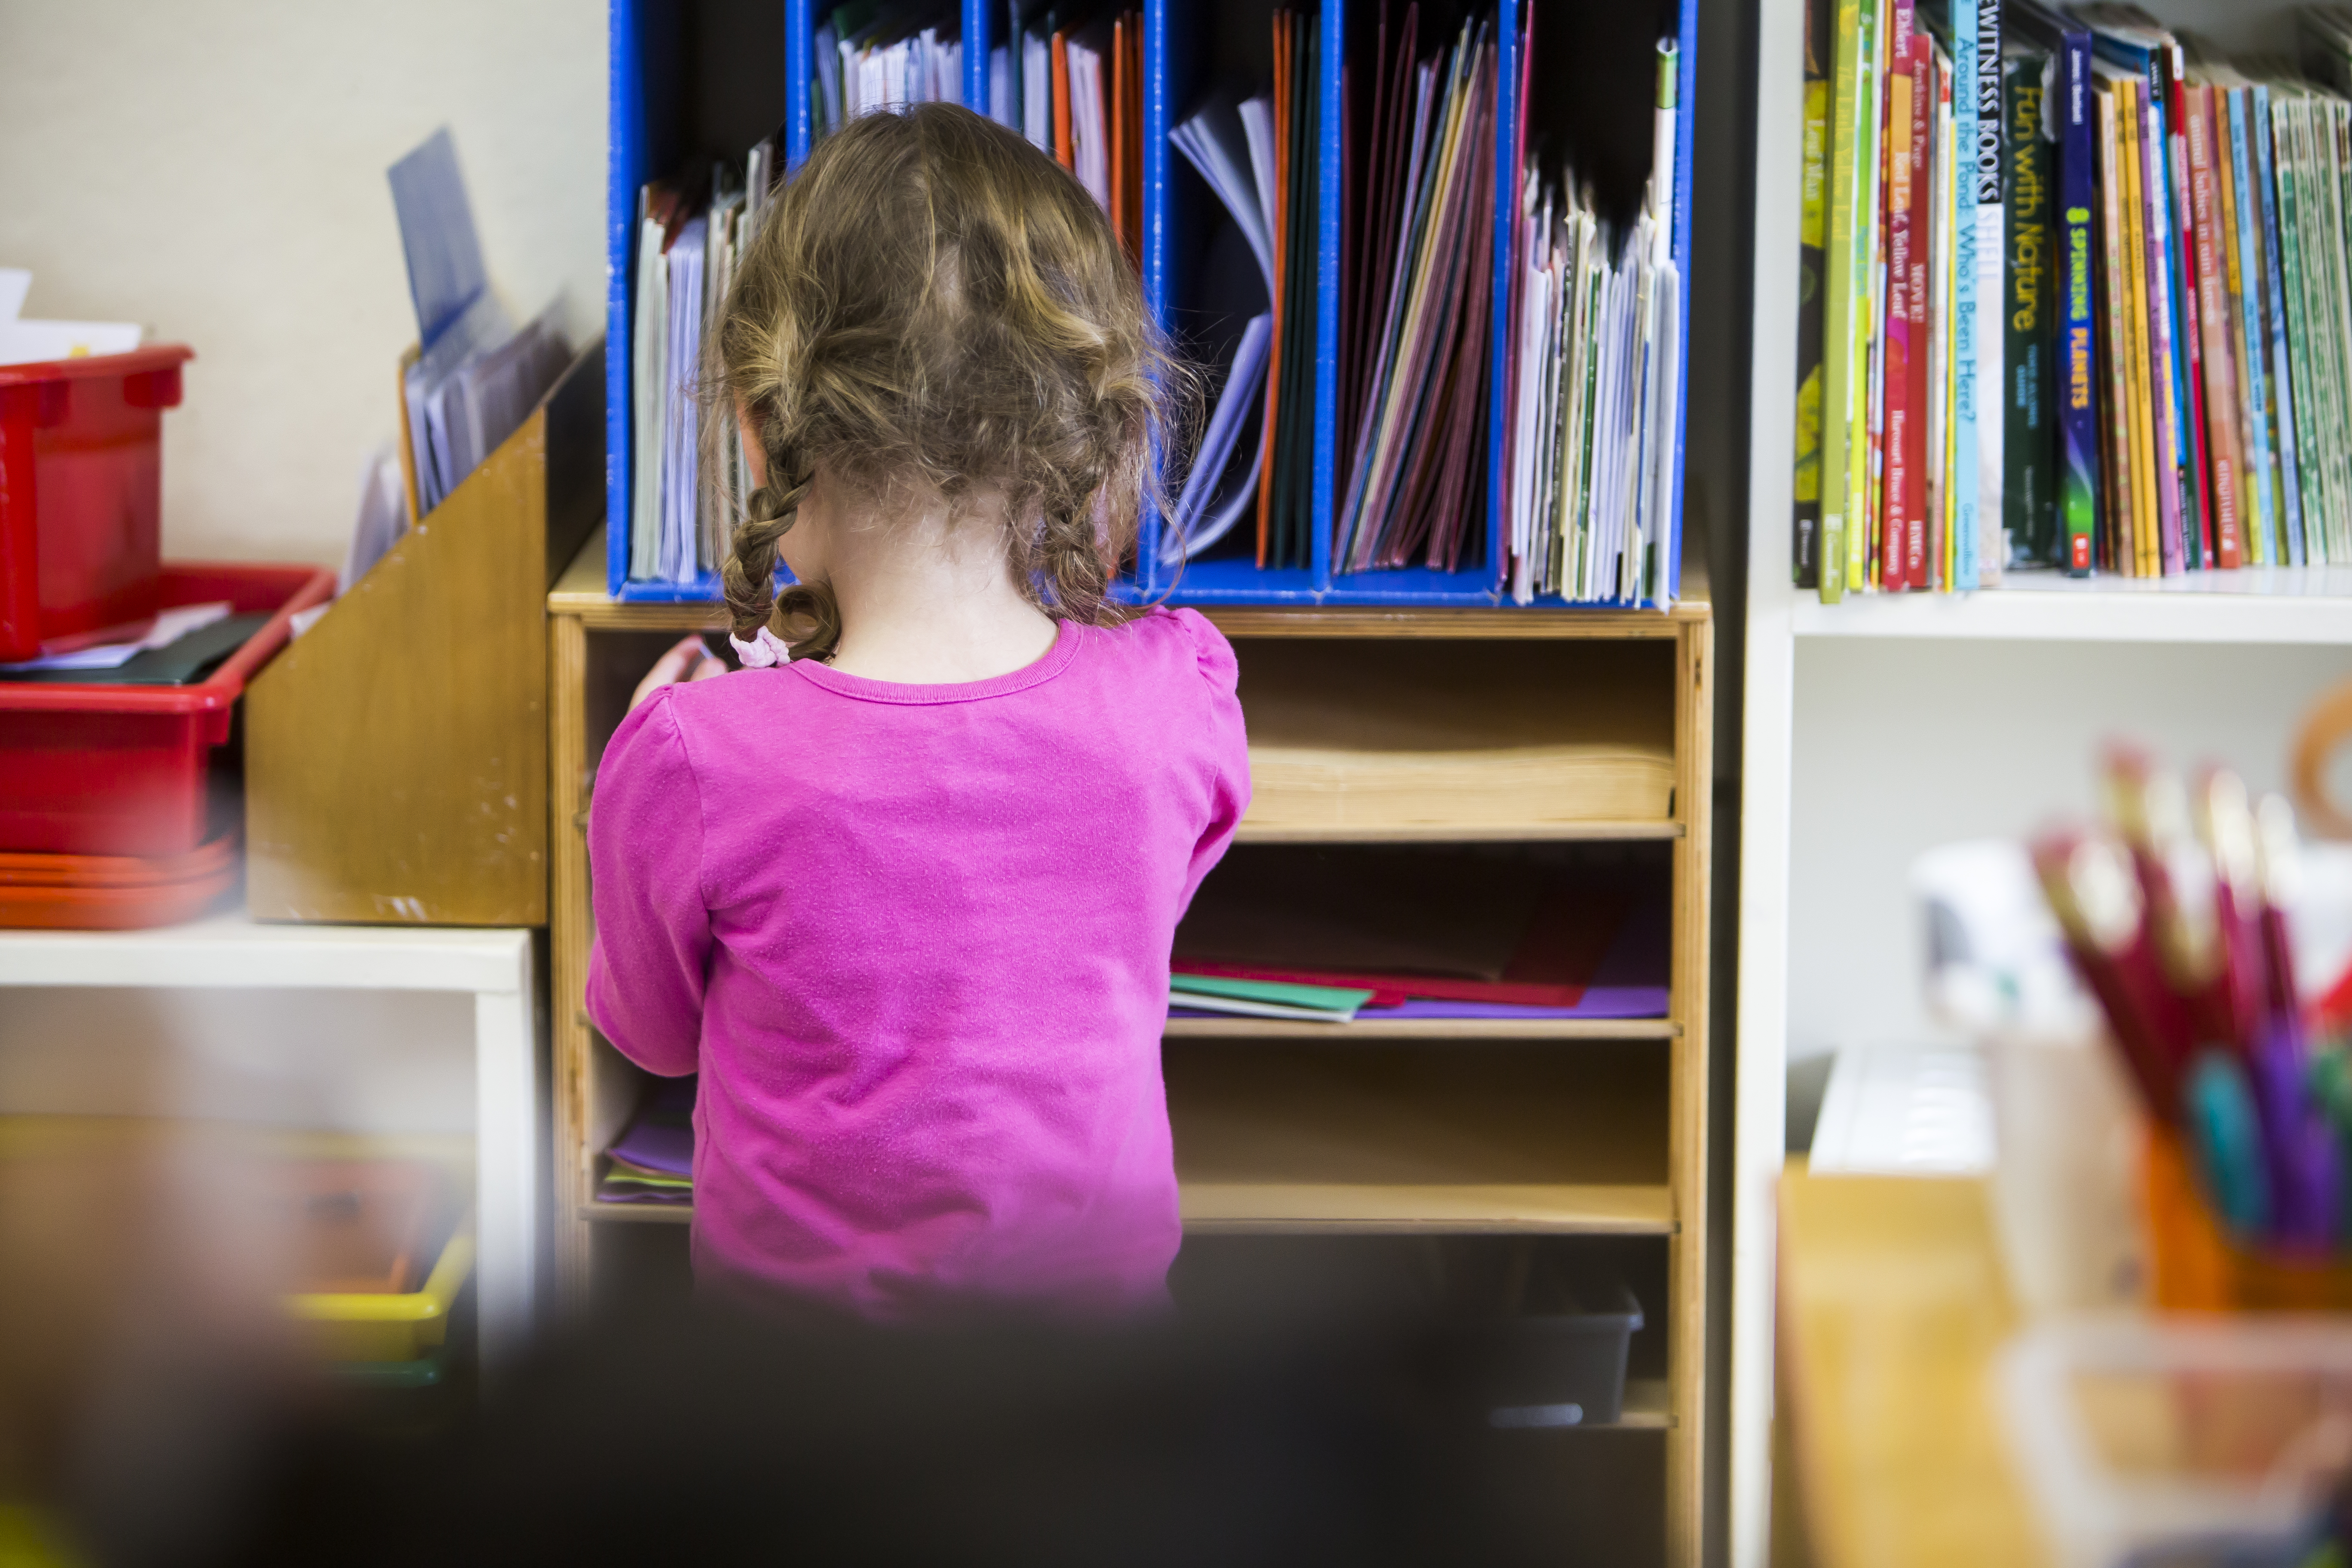 kindergarten girl looking through books